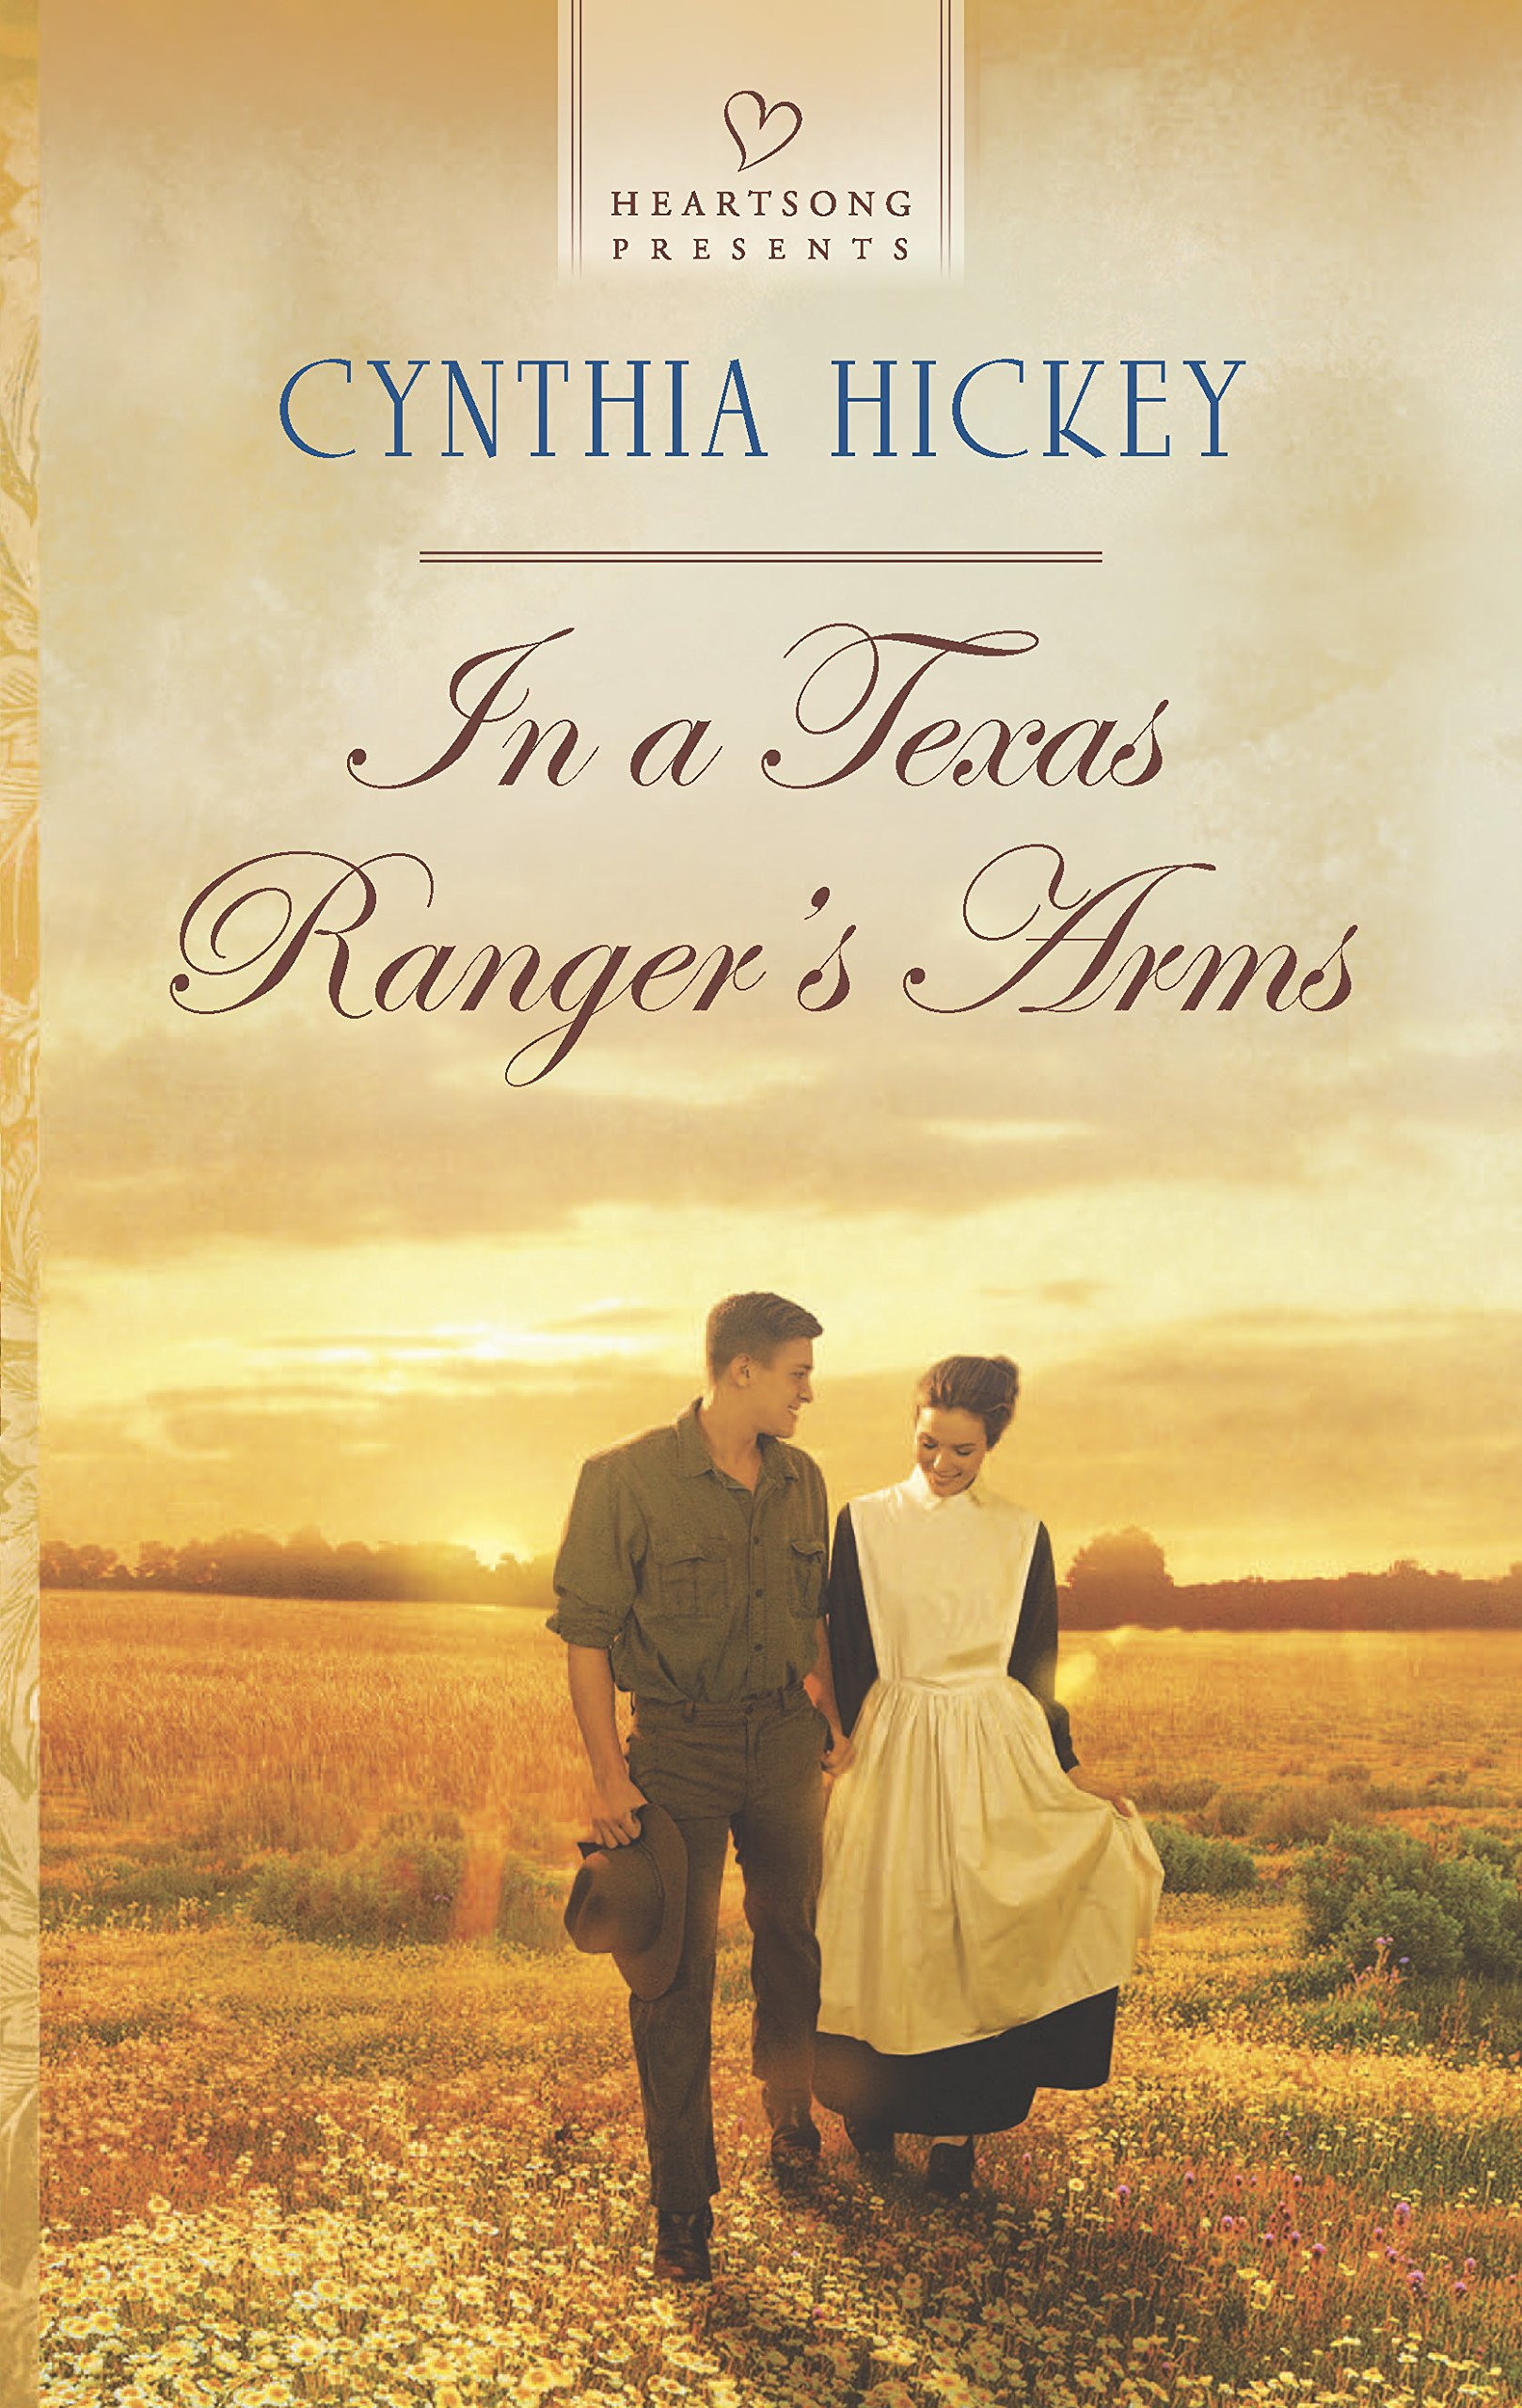 Read Online In a Texas Ranger's Arms (Heartsong Presents) PDF